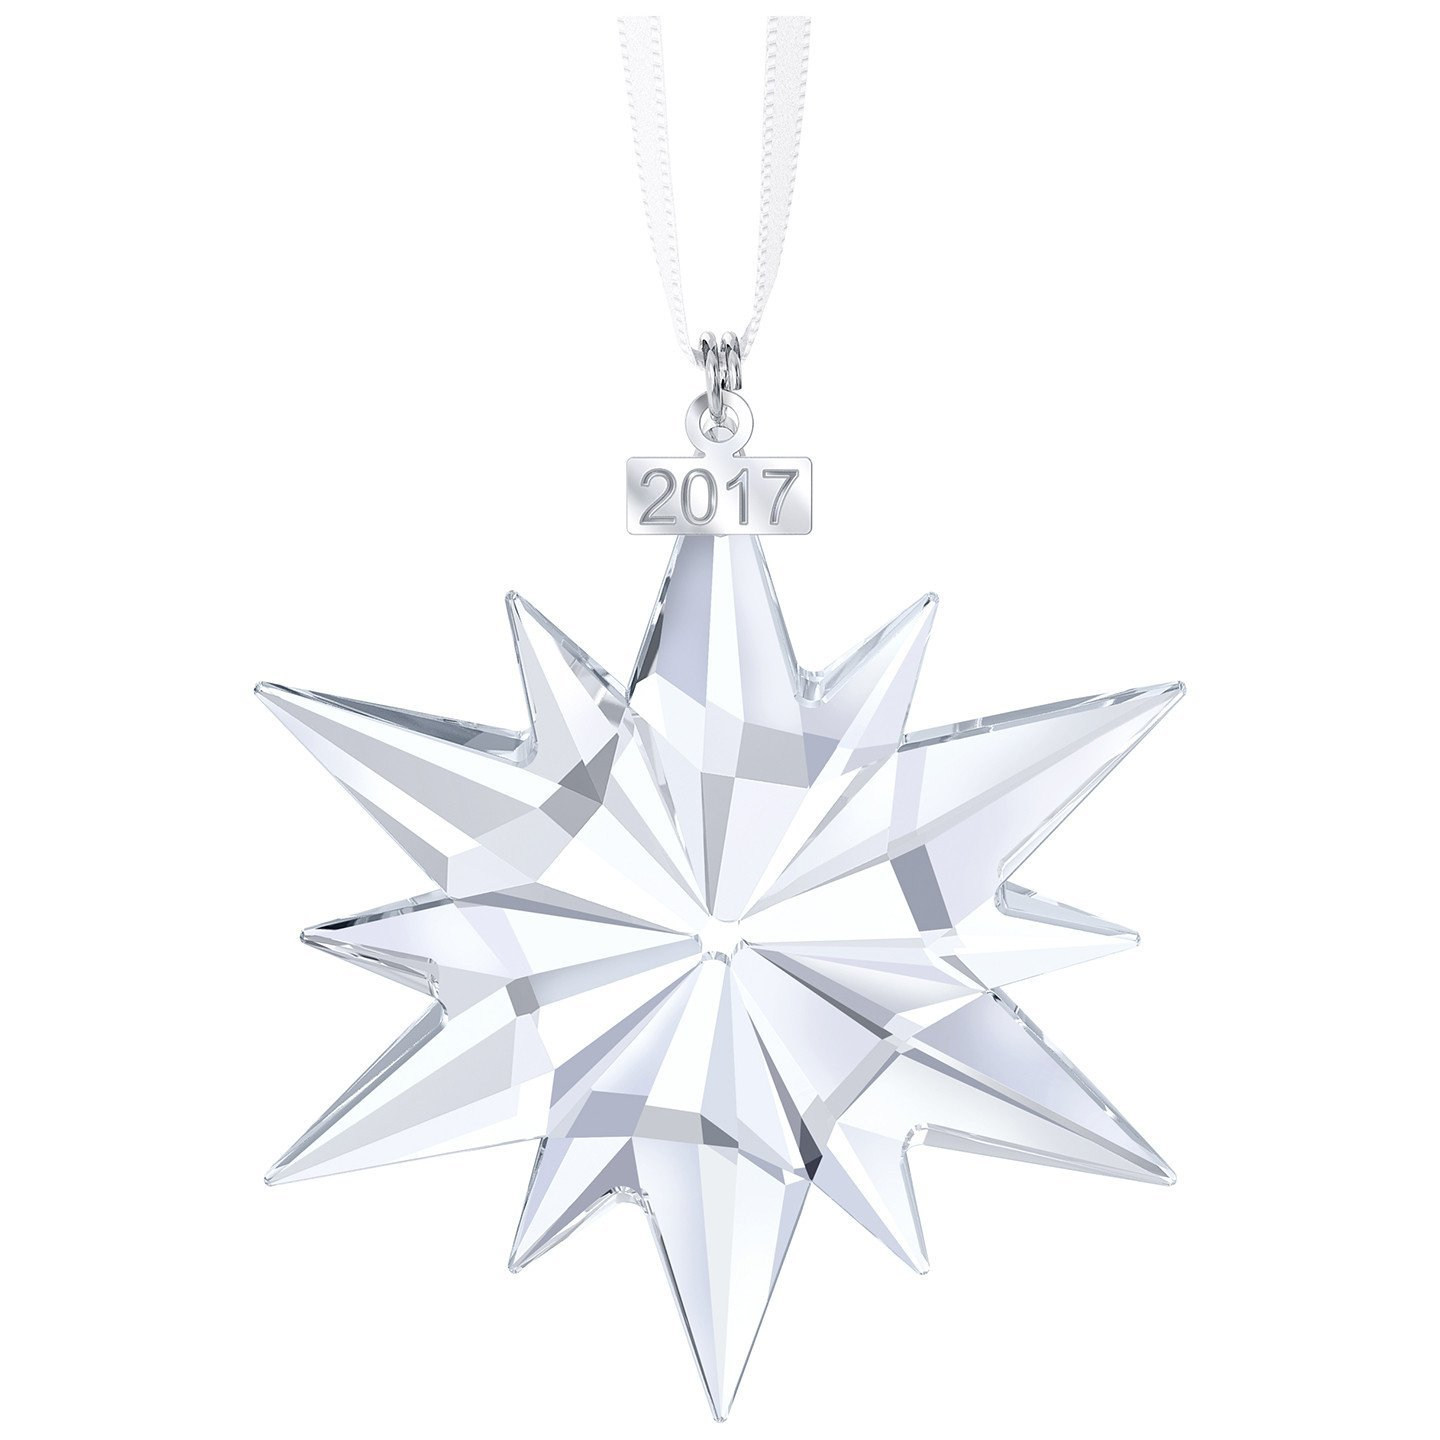 Swarovski Annual Edition Christmas Ornament - We get one of these every year for our tree. We have been doing this since 2002 I think, our tree looks awesome.